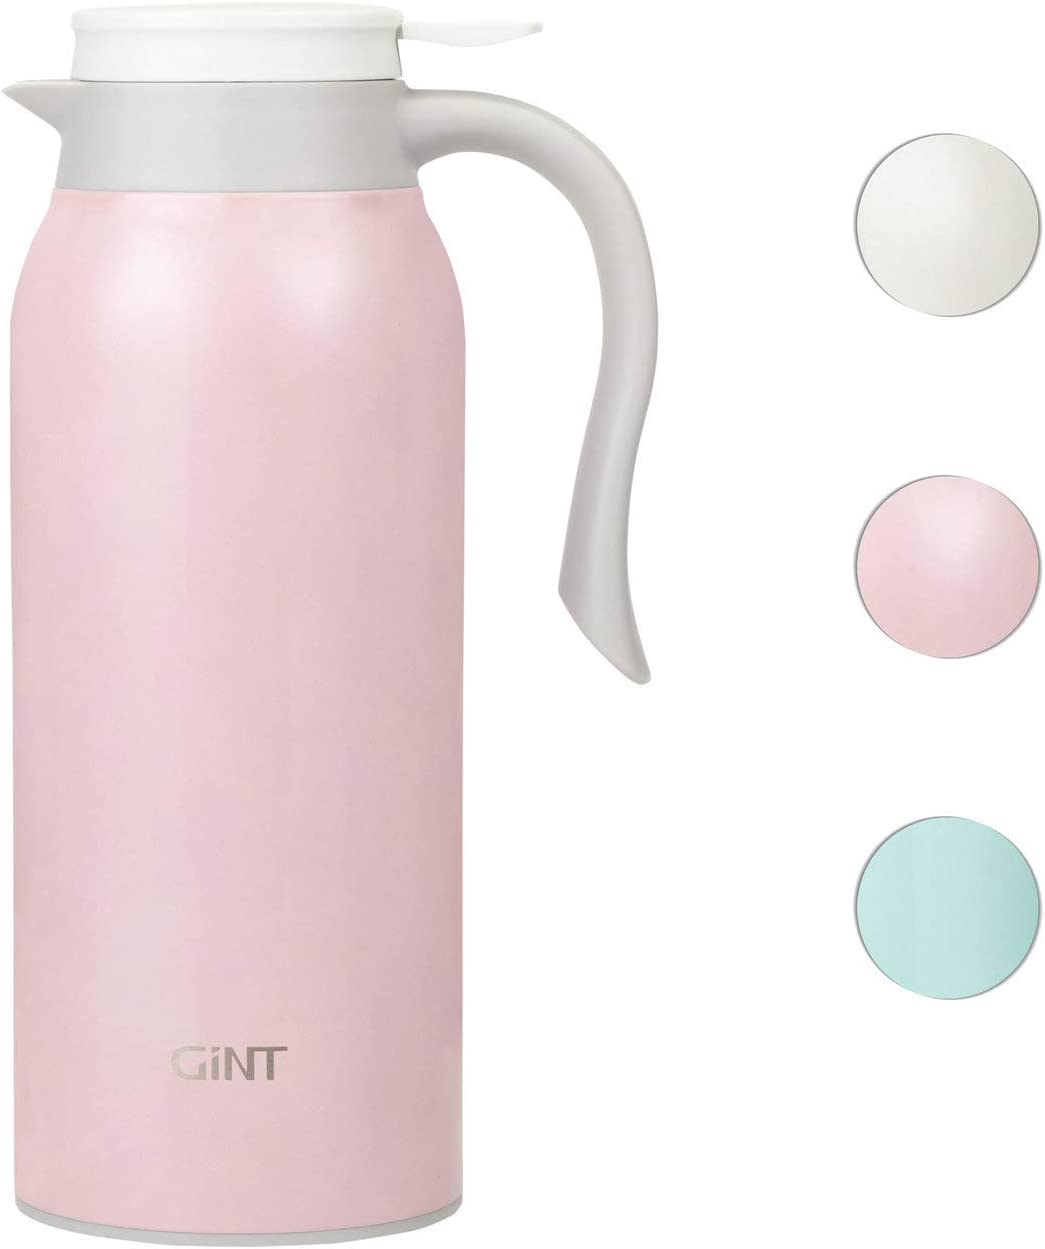 GiNT 51 Oz Stainless Steel Thermal Coffee Carafe, Double Walled Vacuum Thermos, 12 Hour Heat Retention, 1.5 Liter Tea, Water, and Coffee Dispenser, Pink